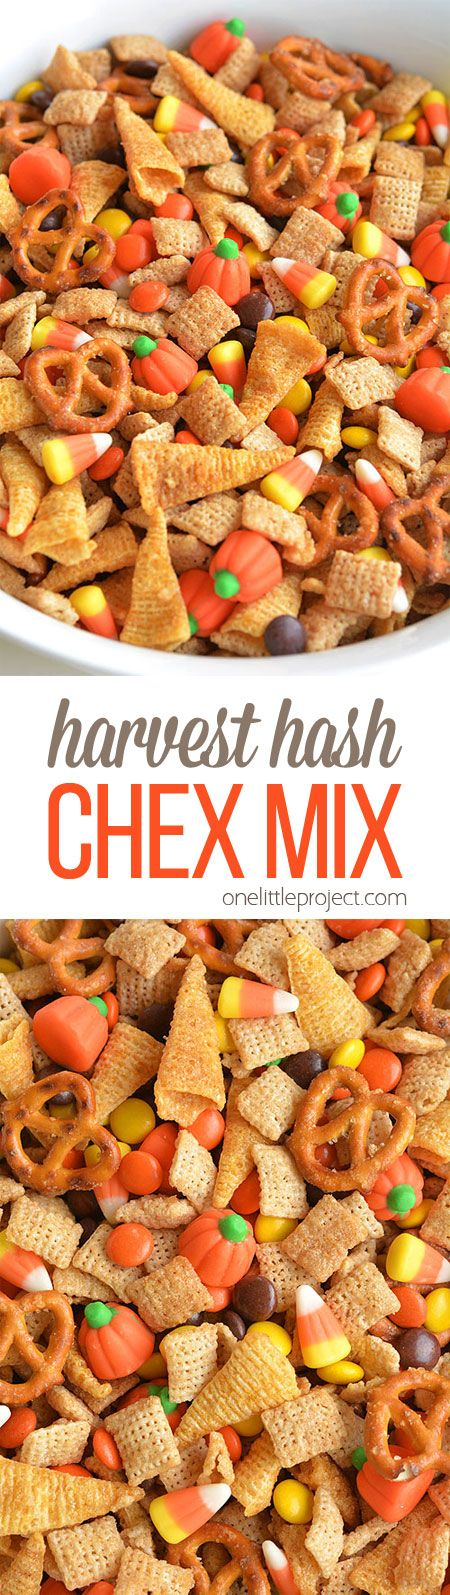 This Halloween harvest hash Chex mix is the PERFECT combination of sweet and salty